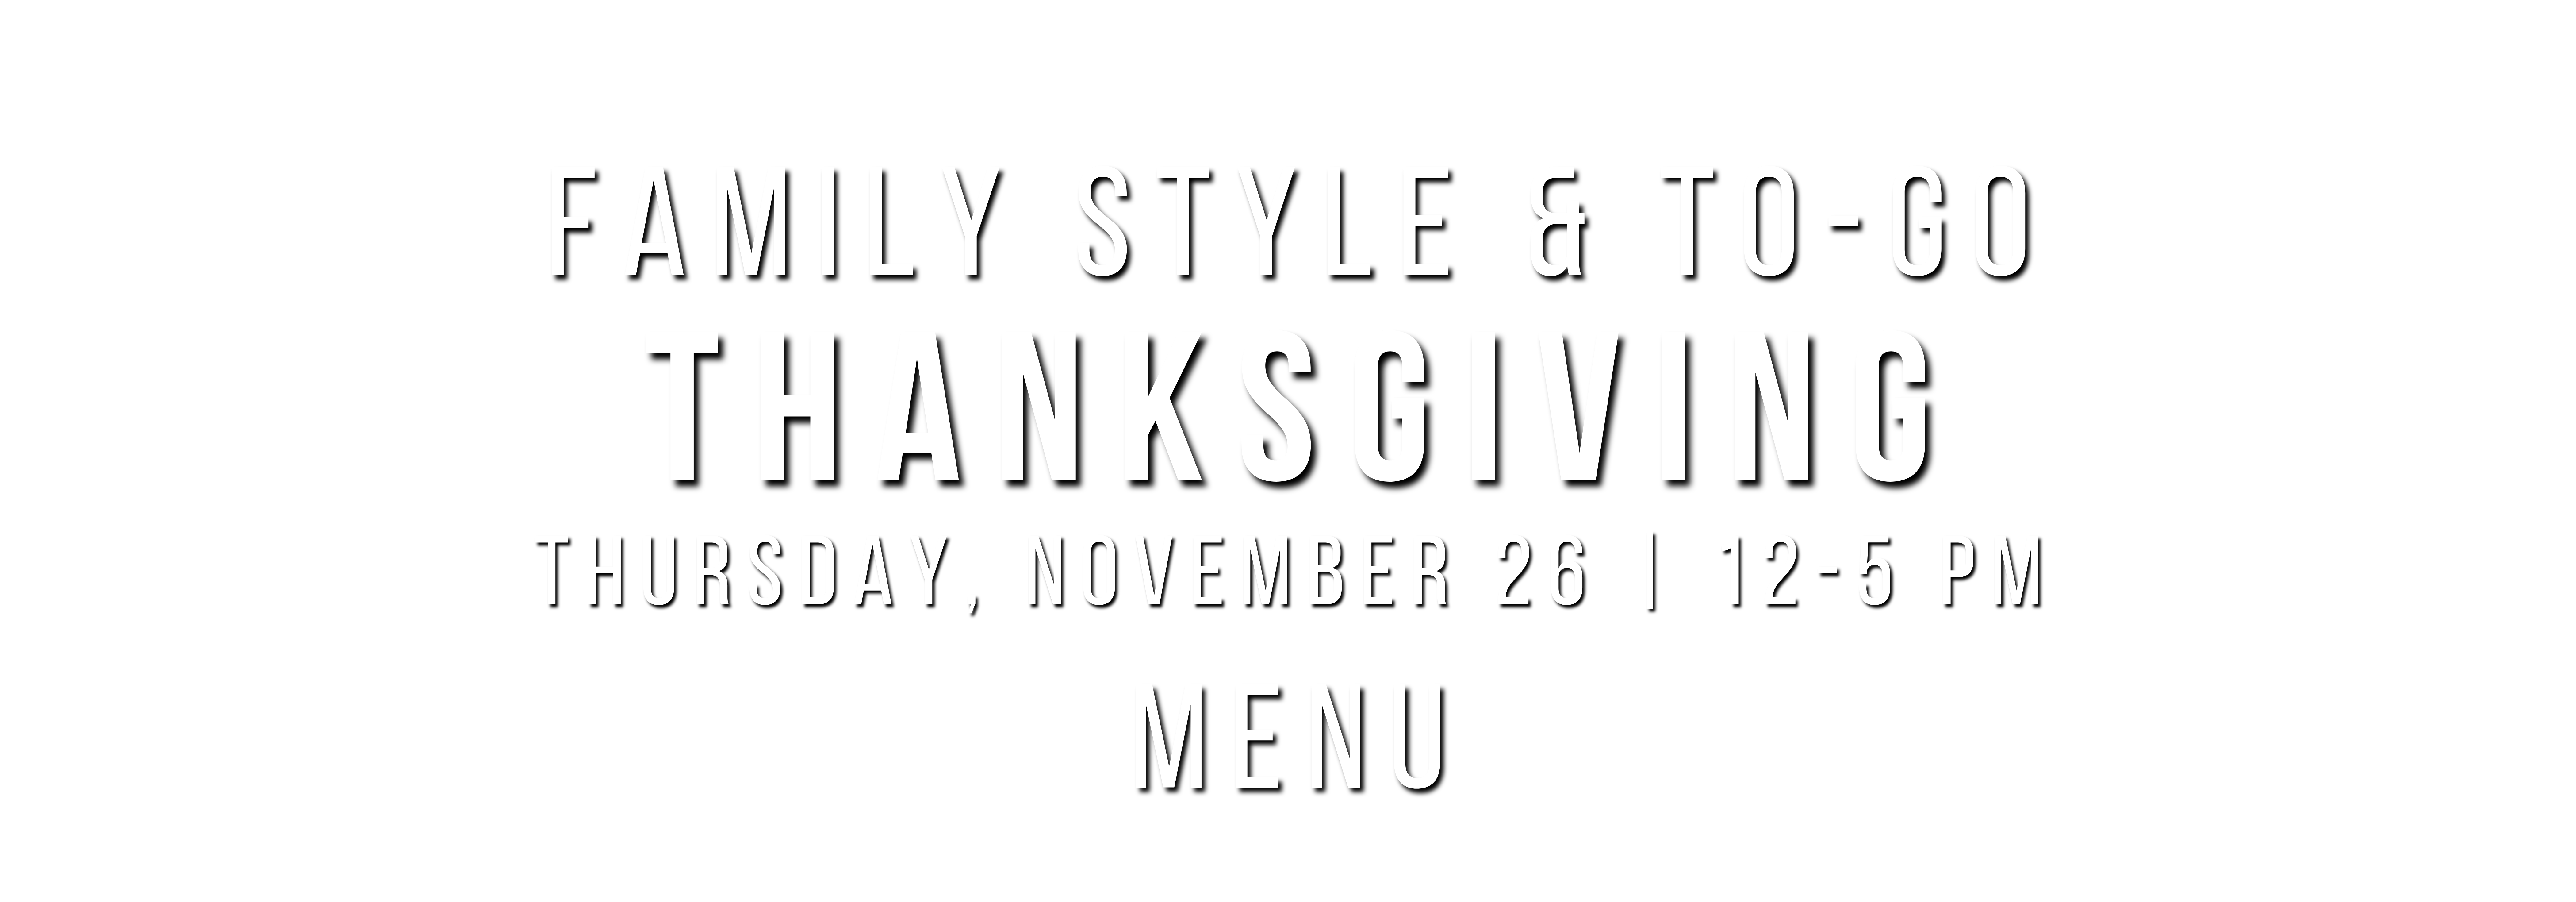 dine in or take out thanksgiving bellingham wa btown